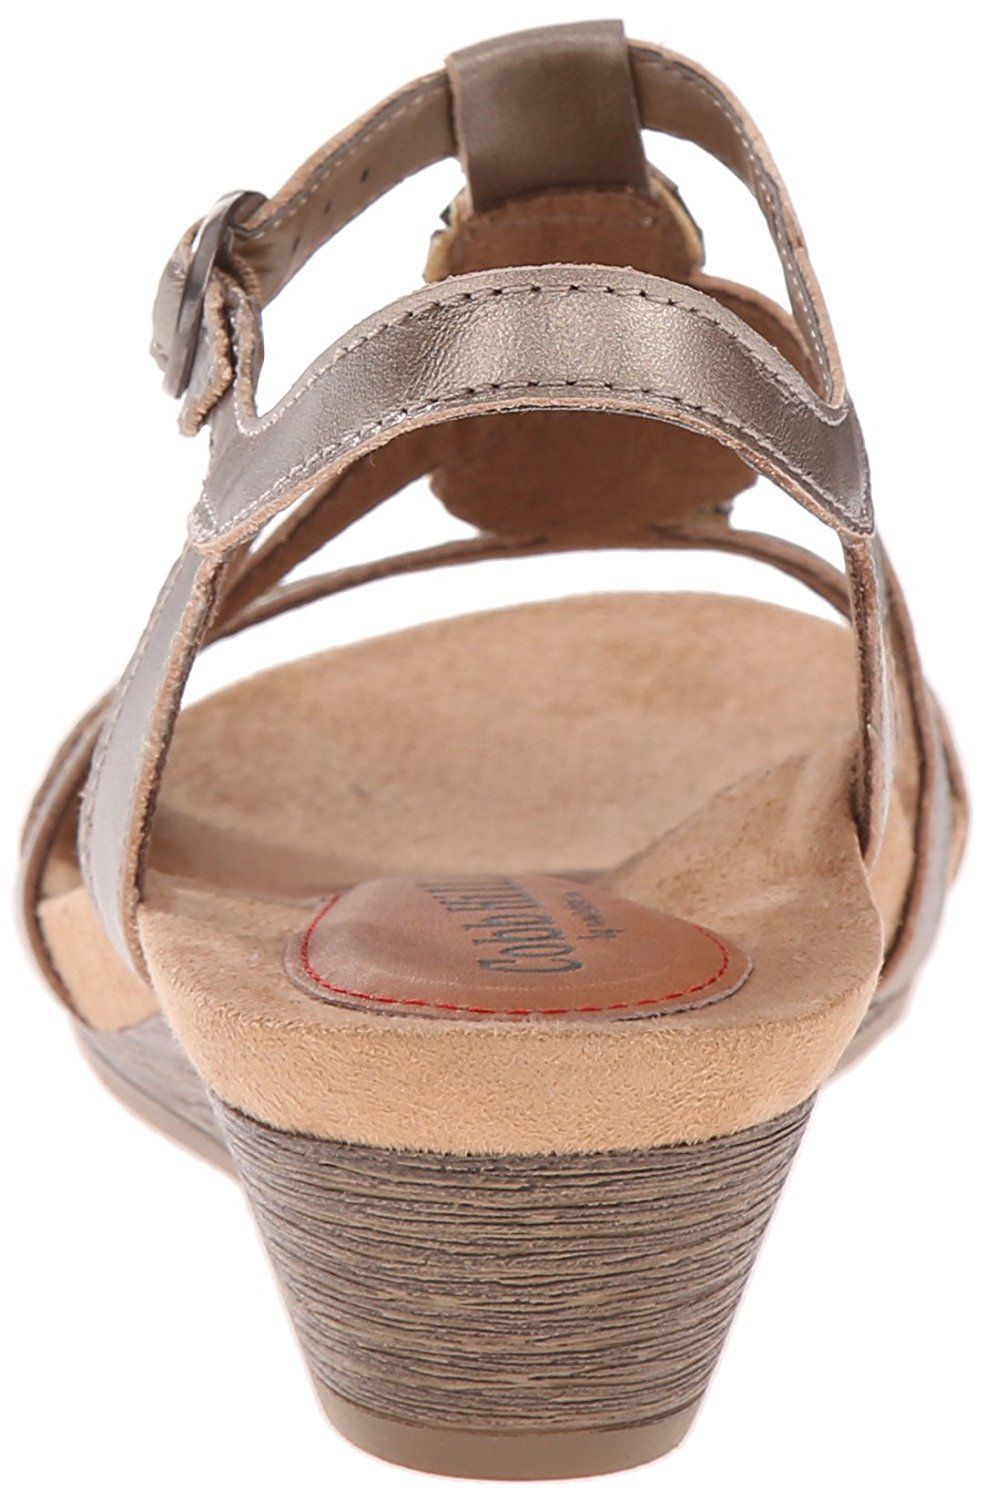 60c23f65b07266 Cobb Hill Women s Hannah CH Wedge Sandal   Details can be found by clicking  on the image. (This is an affiliate link)  shoeslover